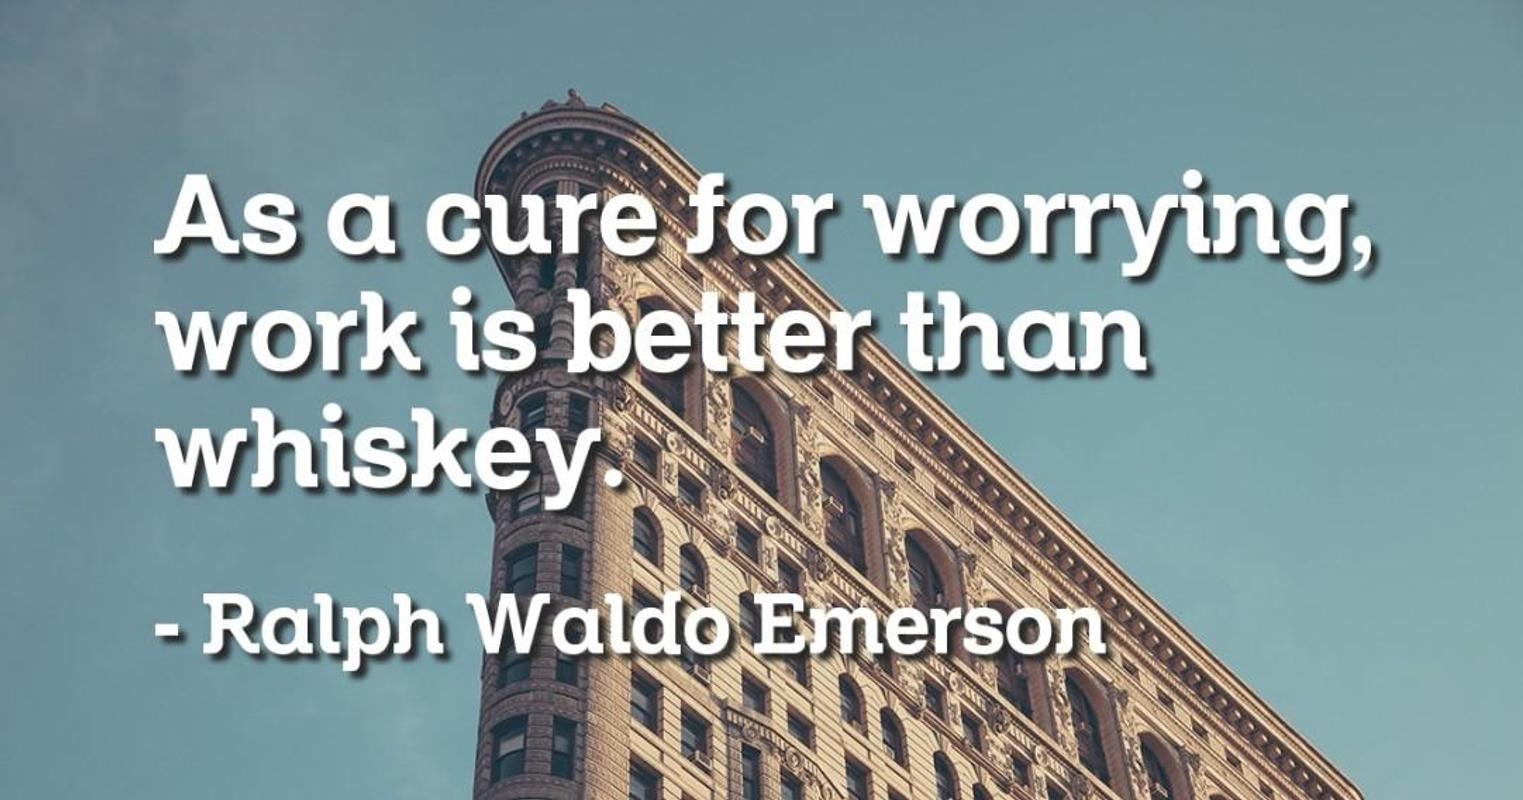 Emerson Quotes | Ralph Waldo Emerson Quotes For Android Apk Download